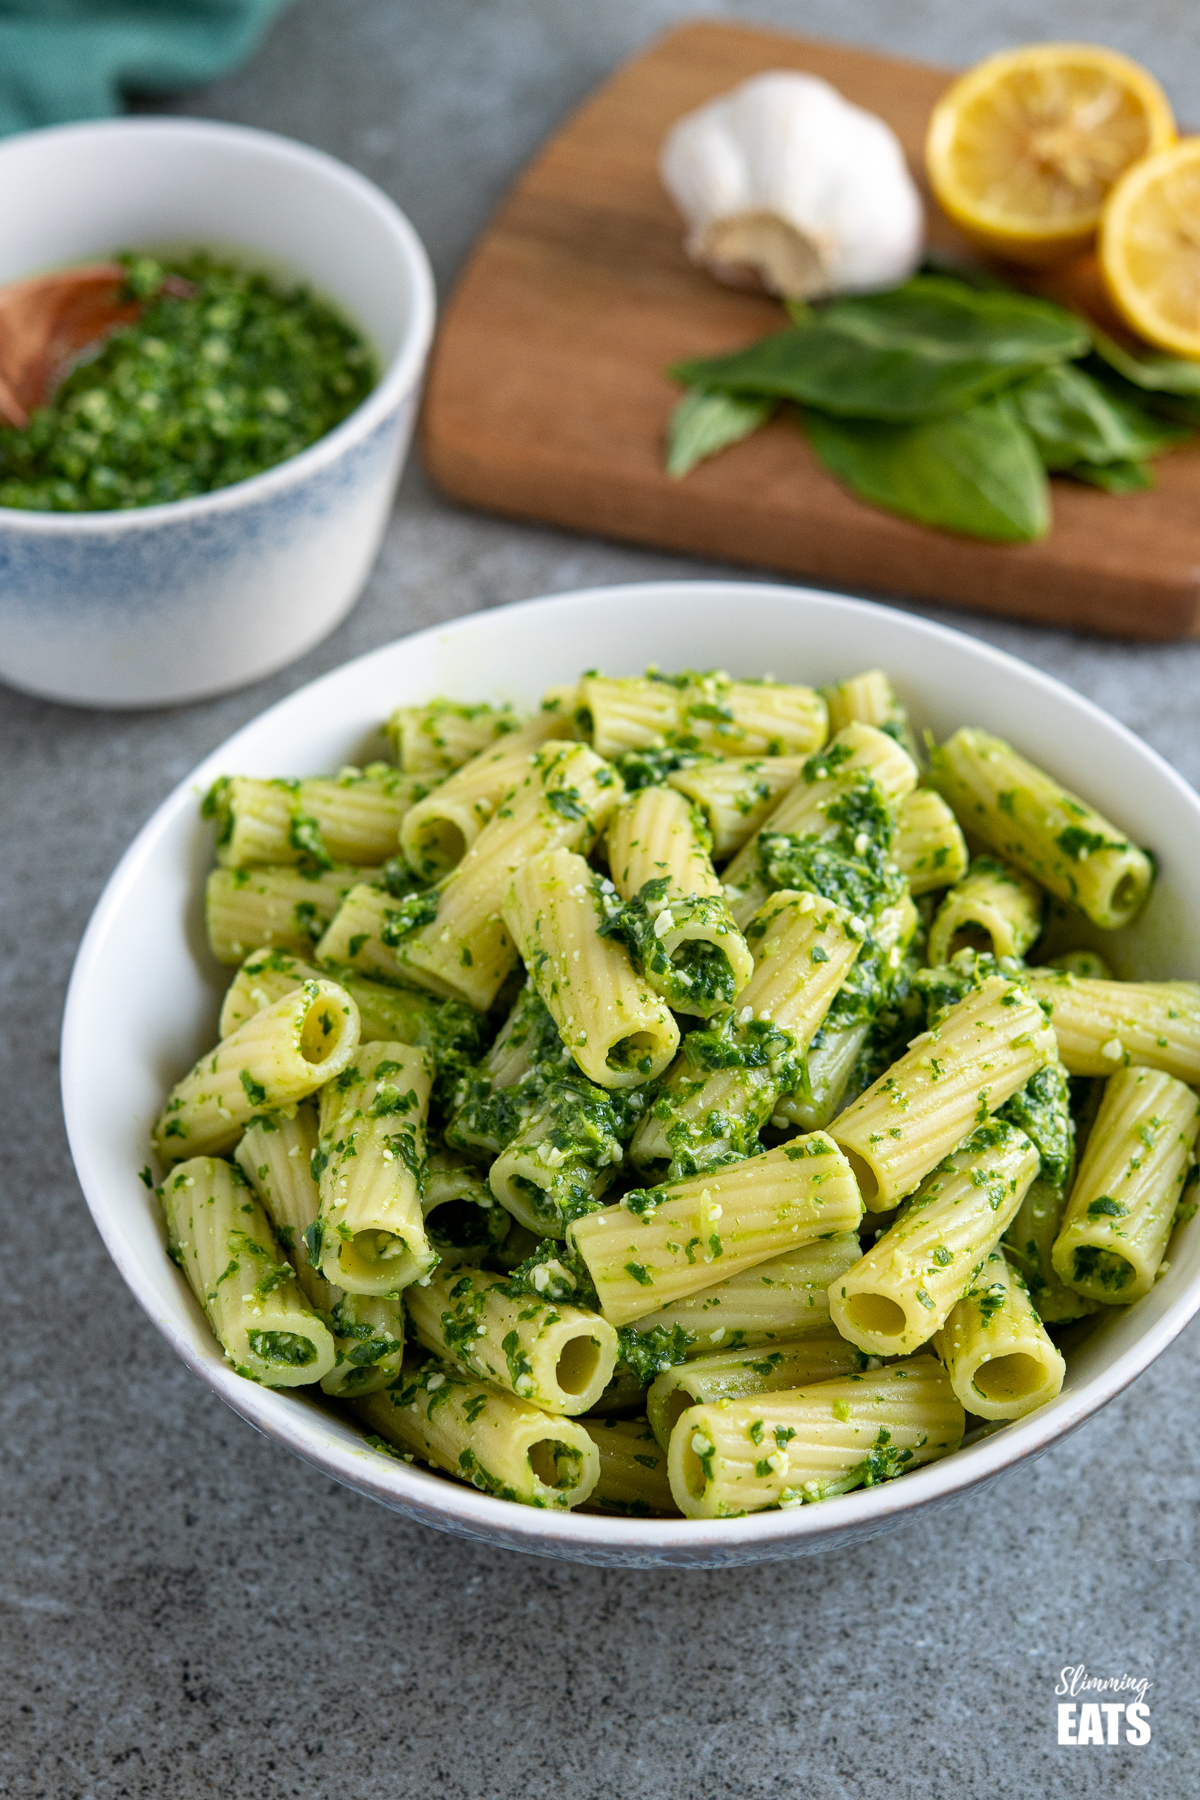 skinny pesto on cooked pasted in a white bowl with basil, lemon and garlic, and bowl of homemade pesto behind